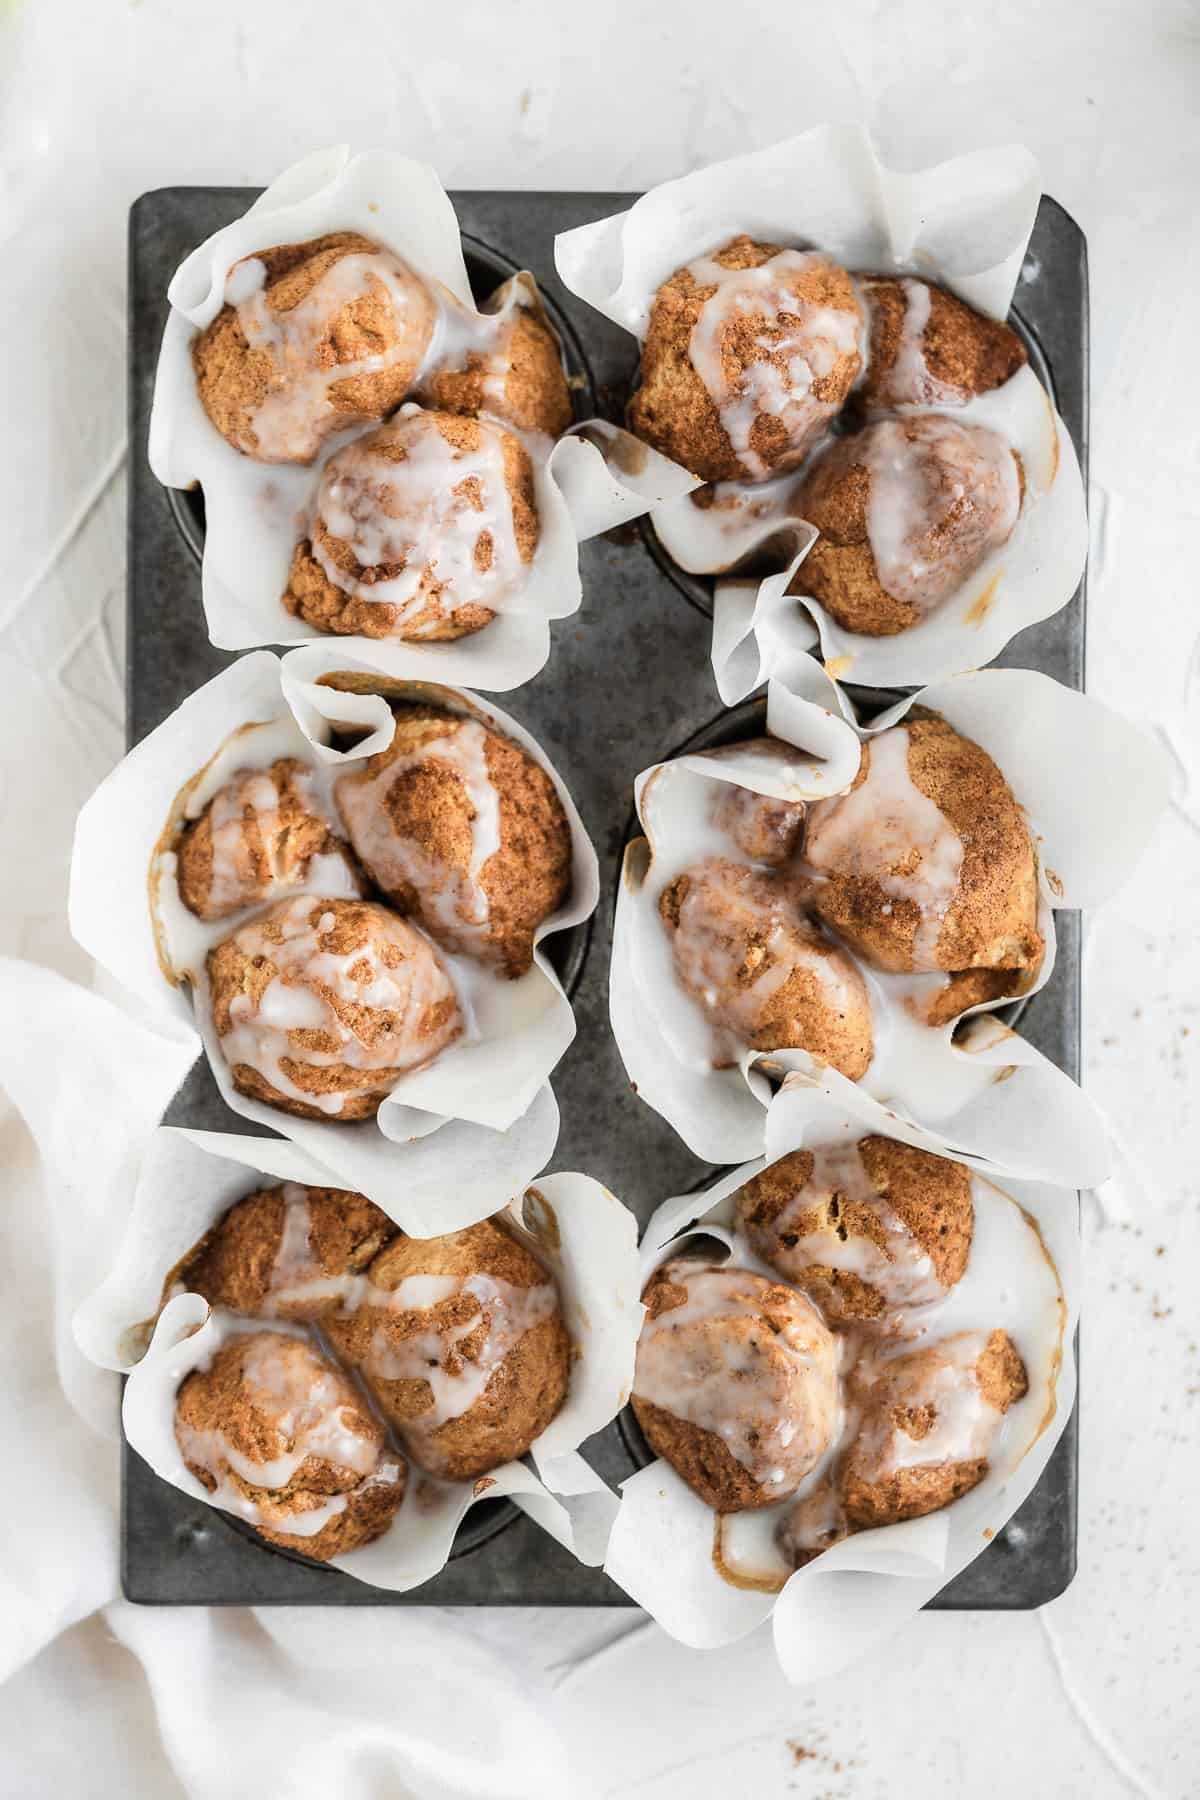 Six muffins in a grey tin with white paper liners and a white glaze.